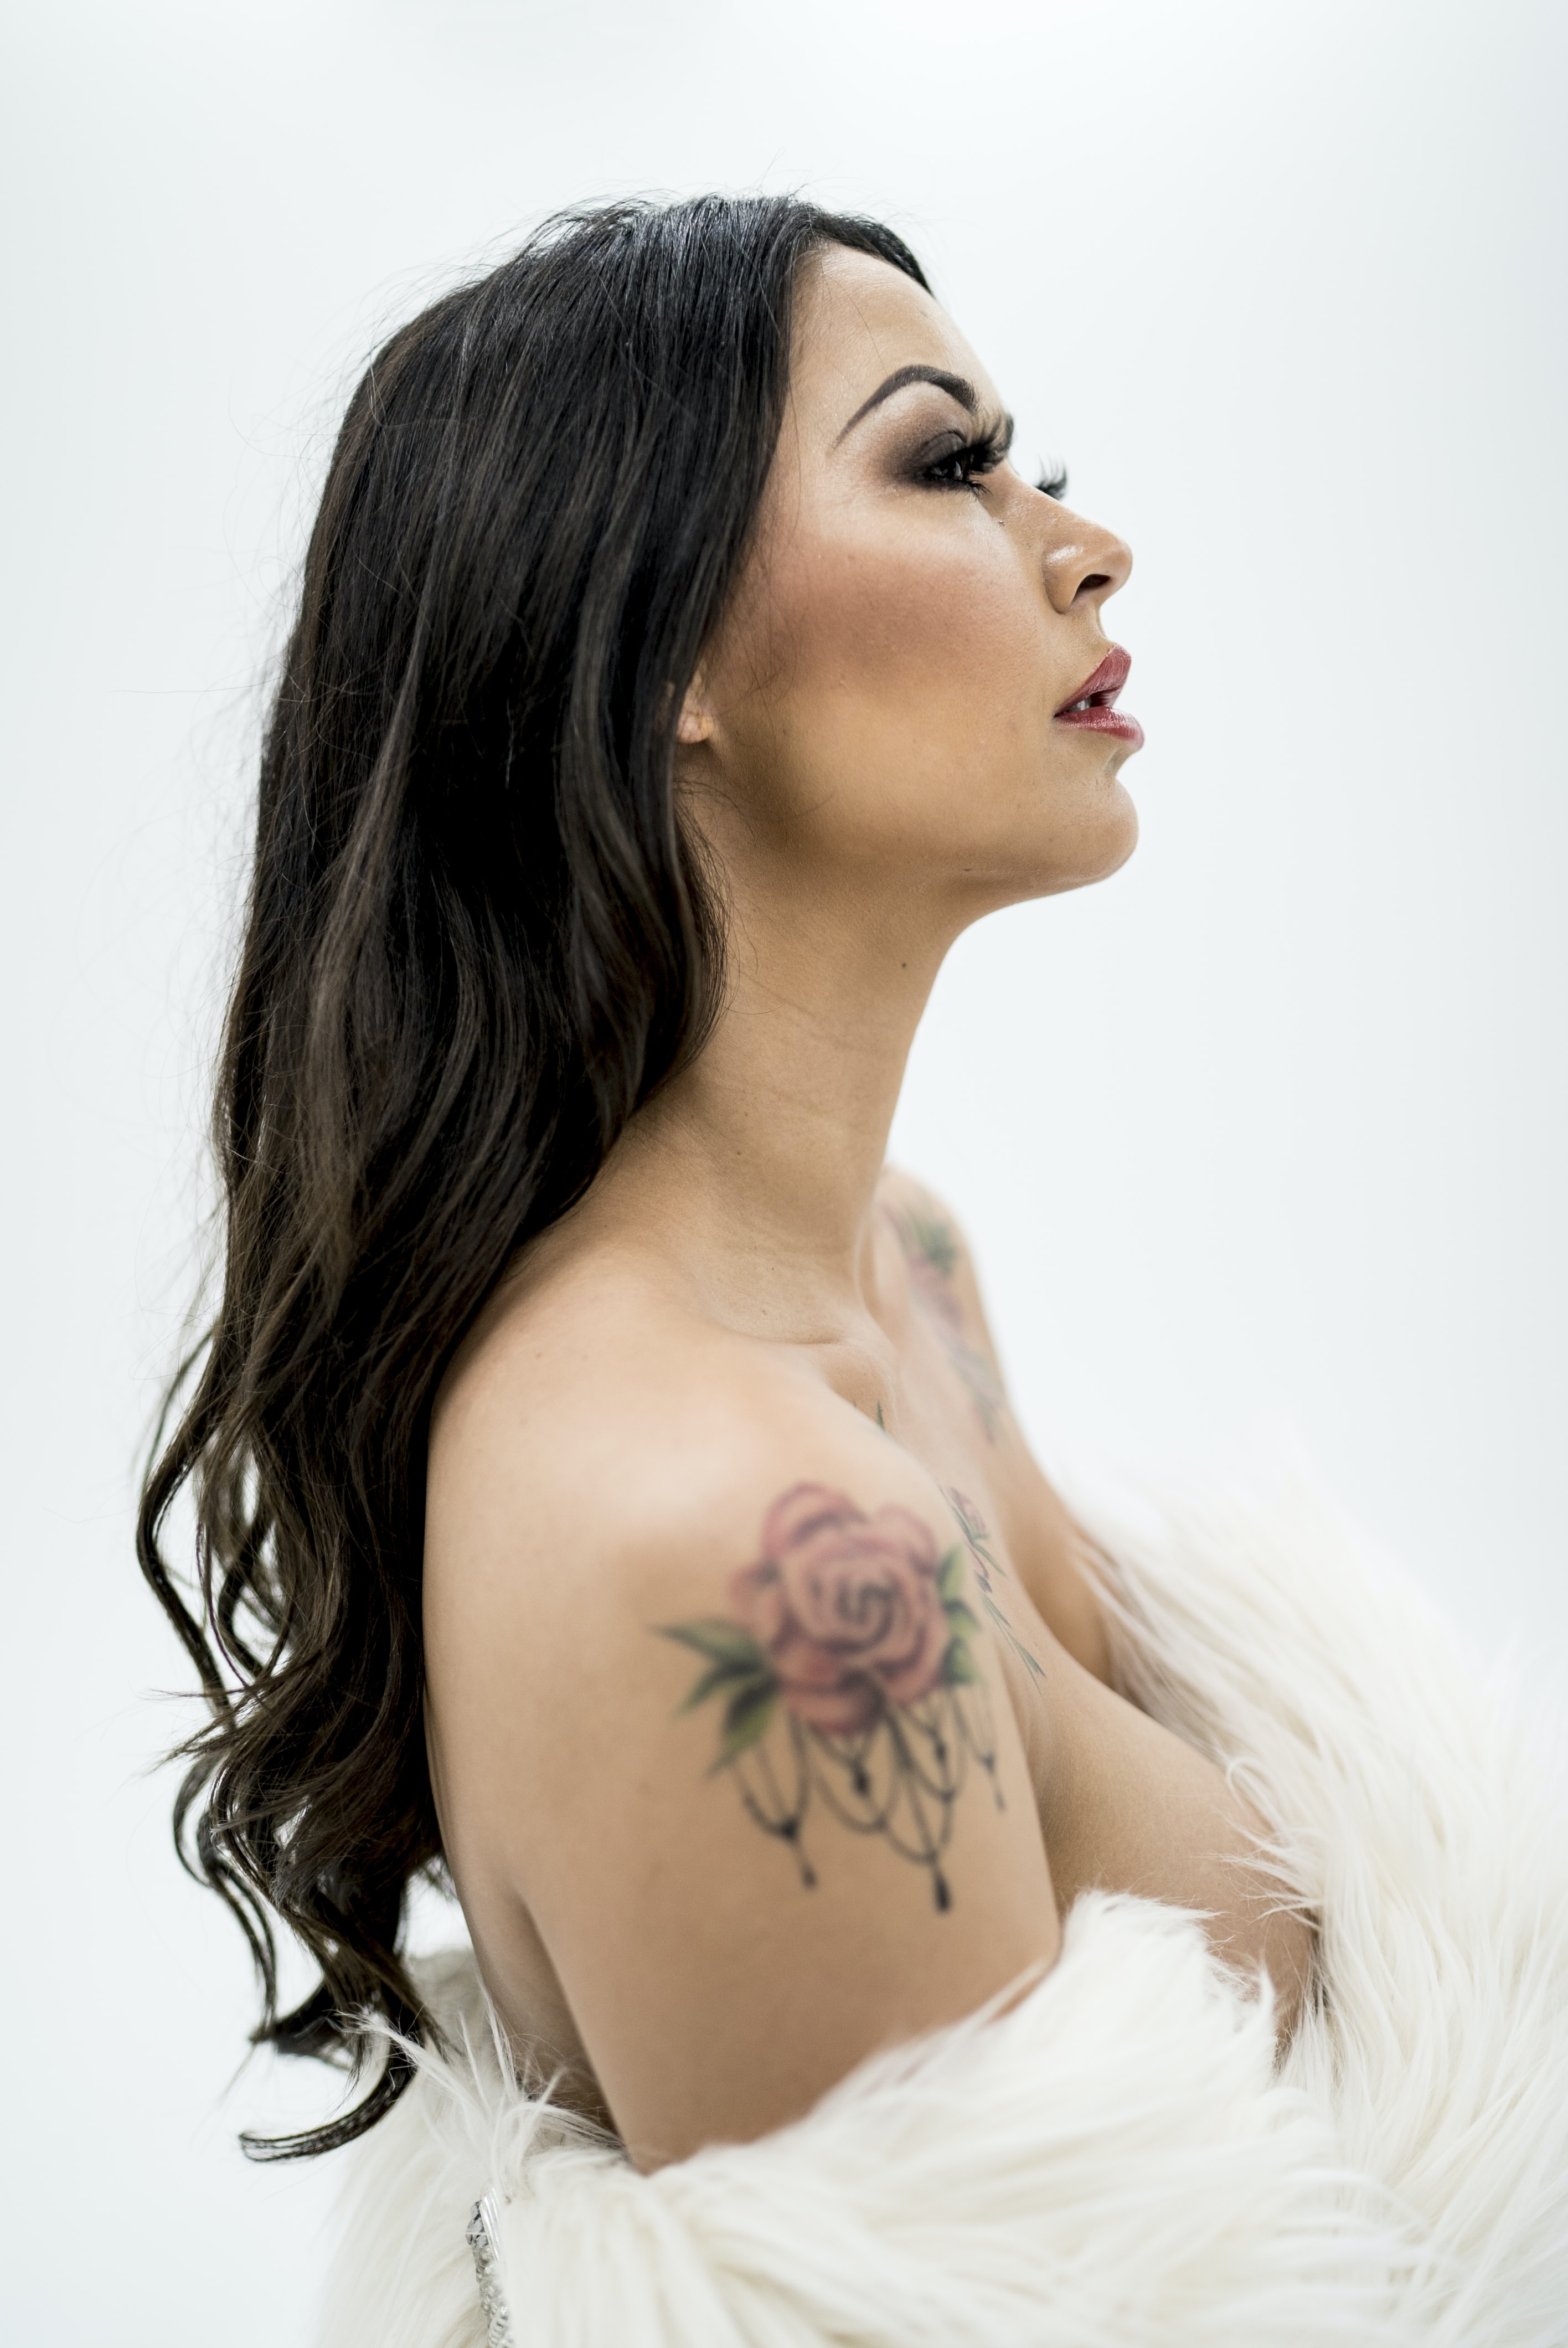 woman wearing white top with rose tattoo